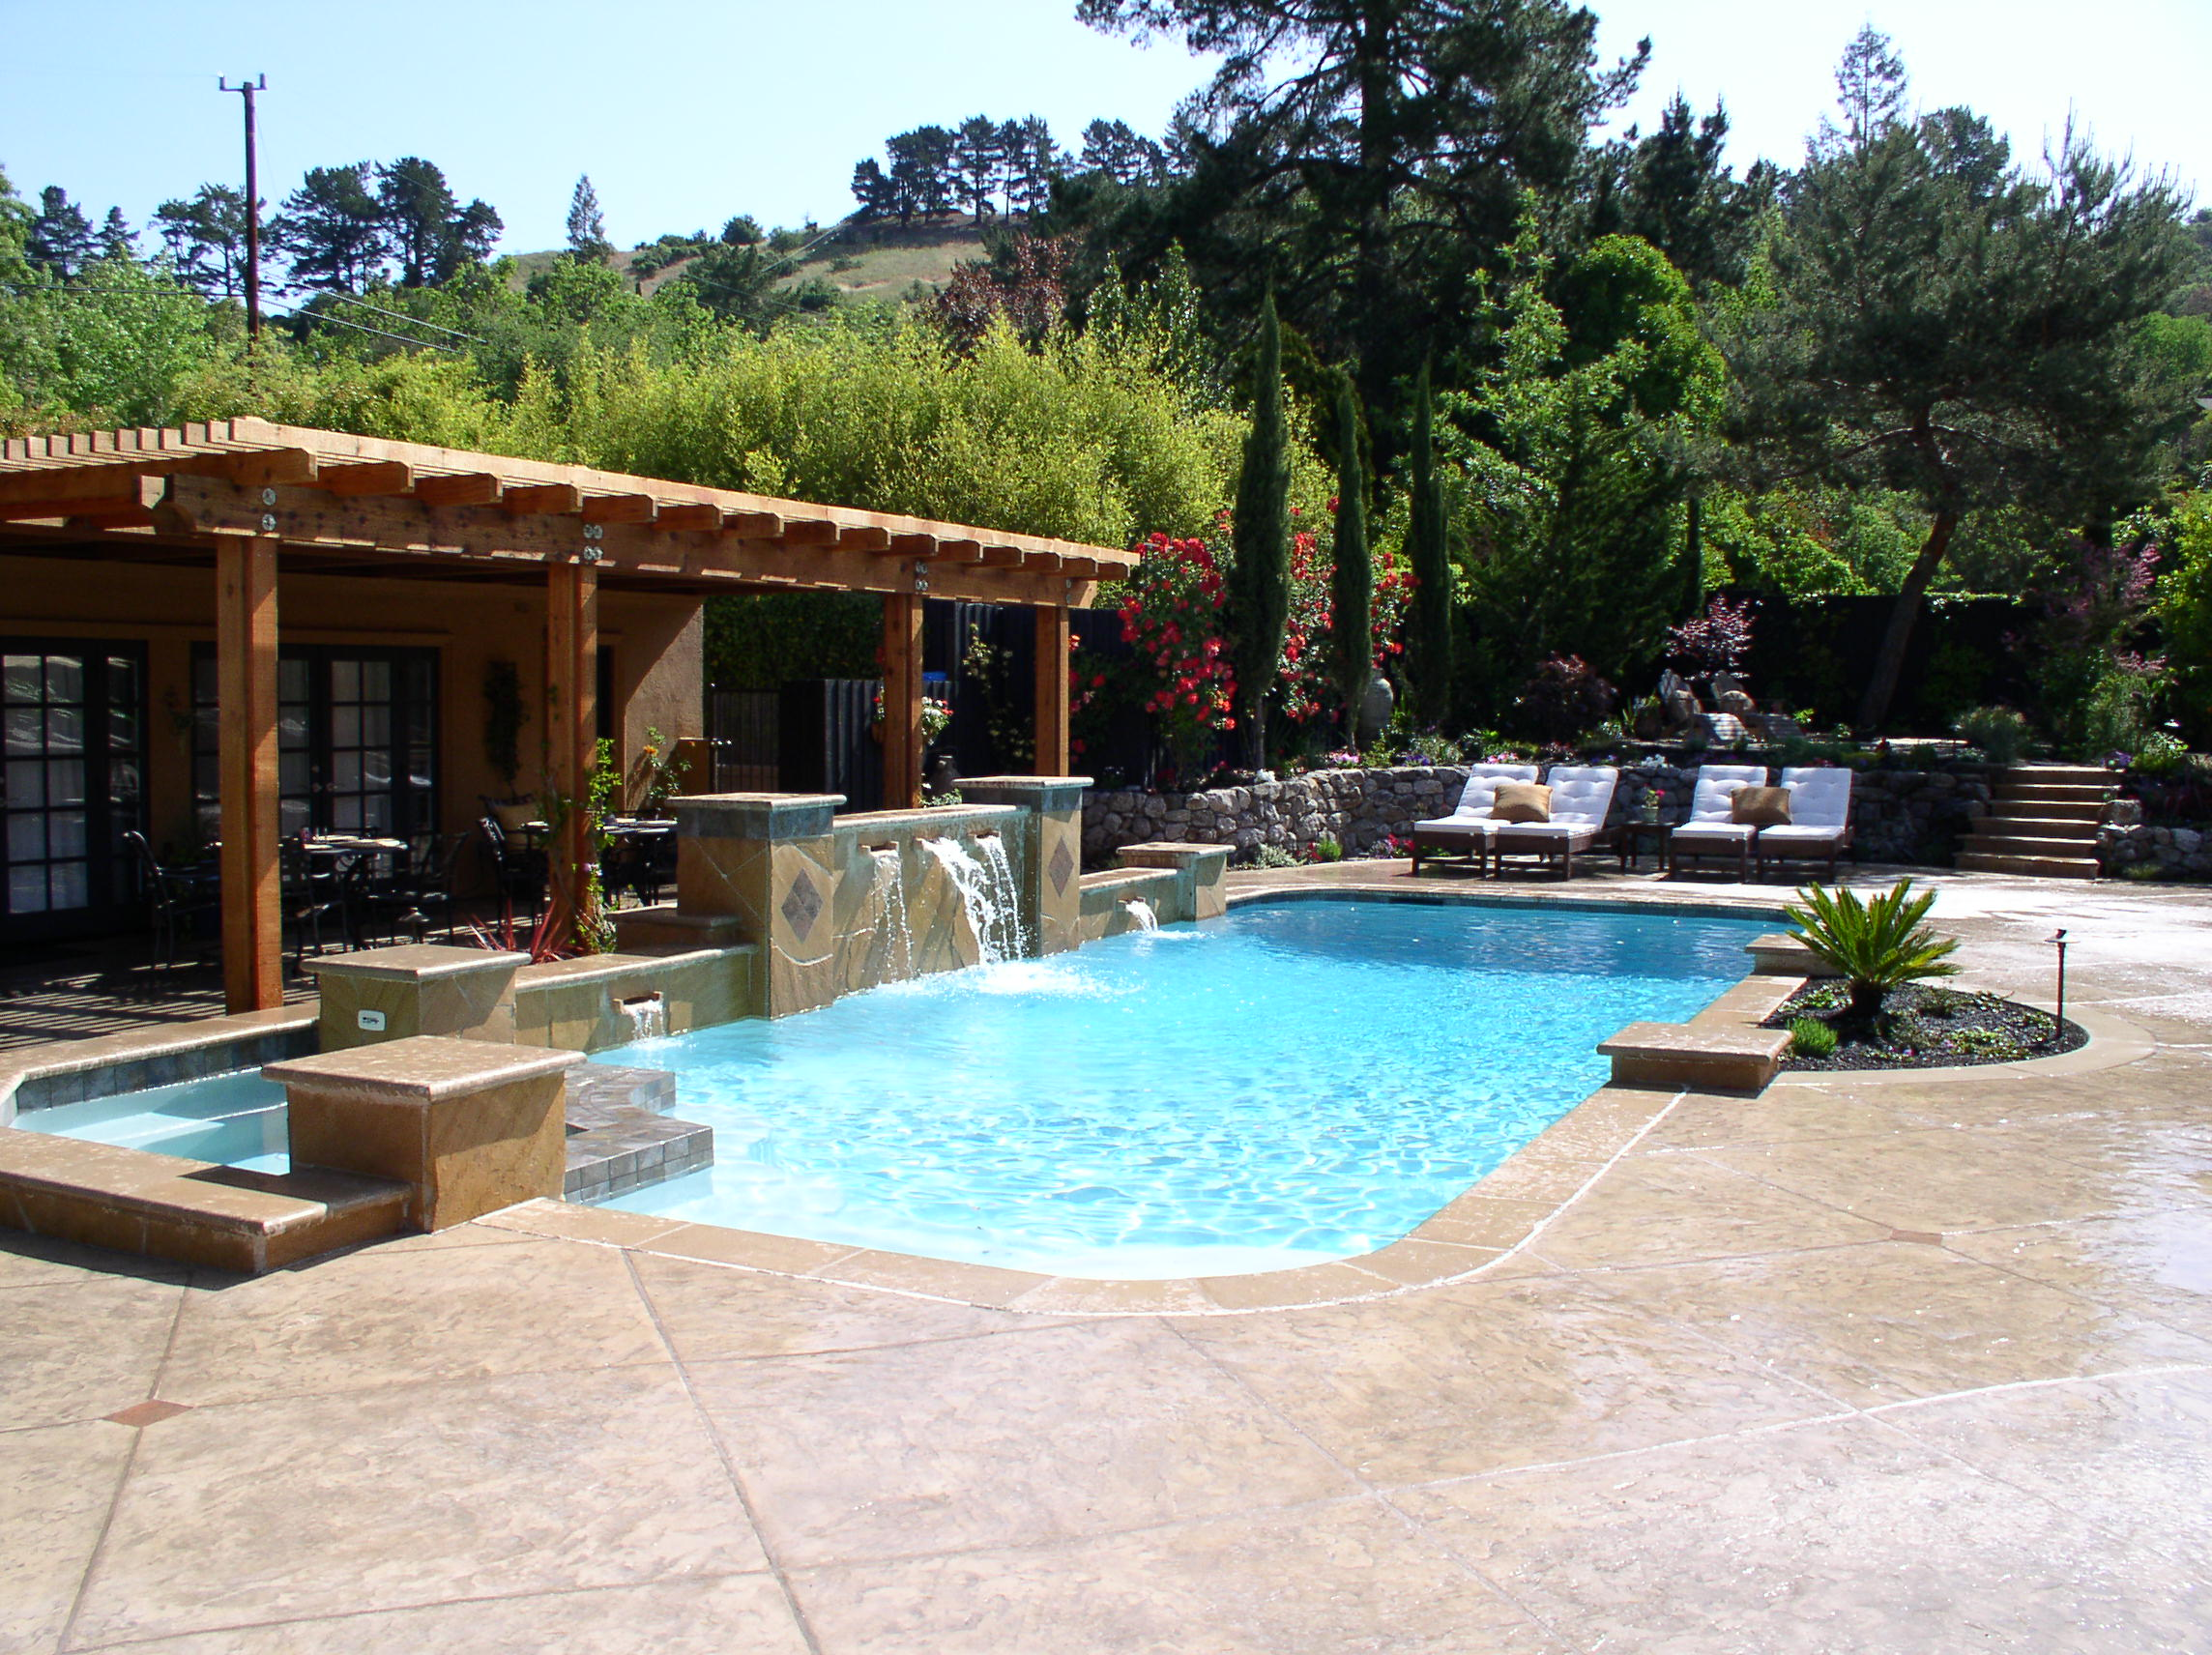 Swimming pool and backyard design Danville